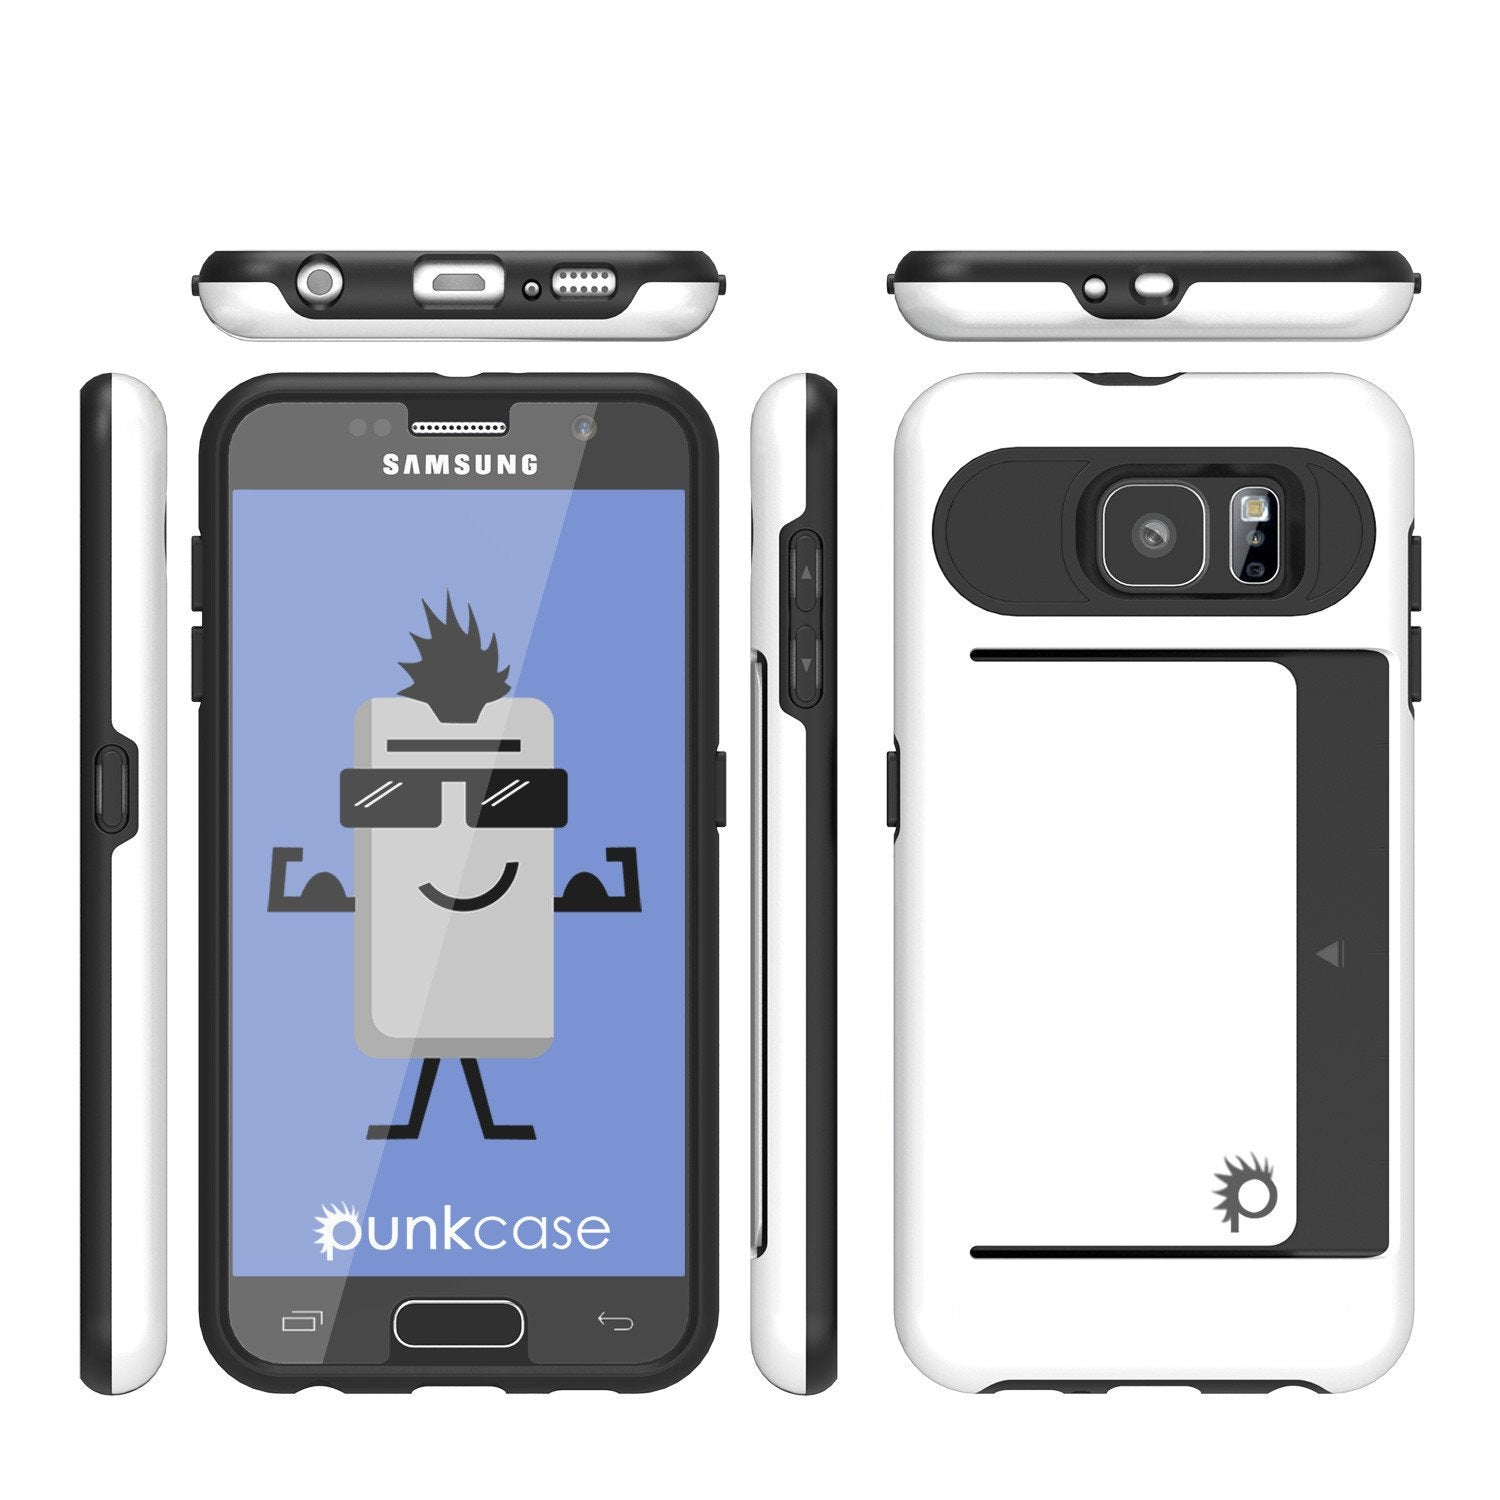 Galaxy S6 EDGE Plus Case PunkCase CLUTCH White Series Slim Armor Soft Cover Case w/ Screen Protector - PunkCase NZ